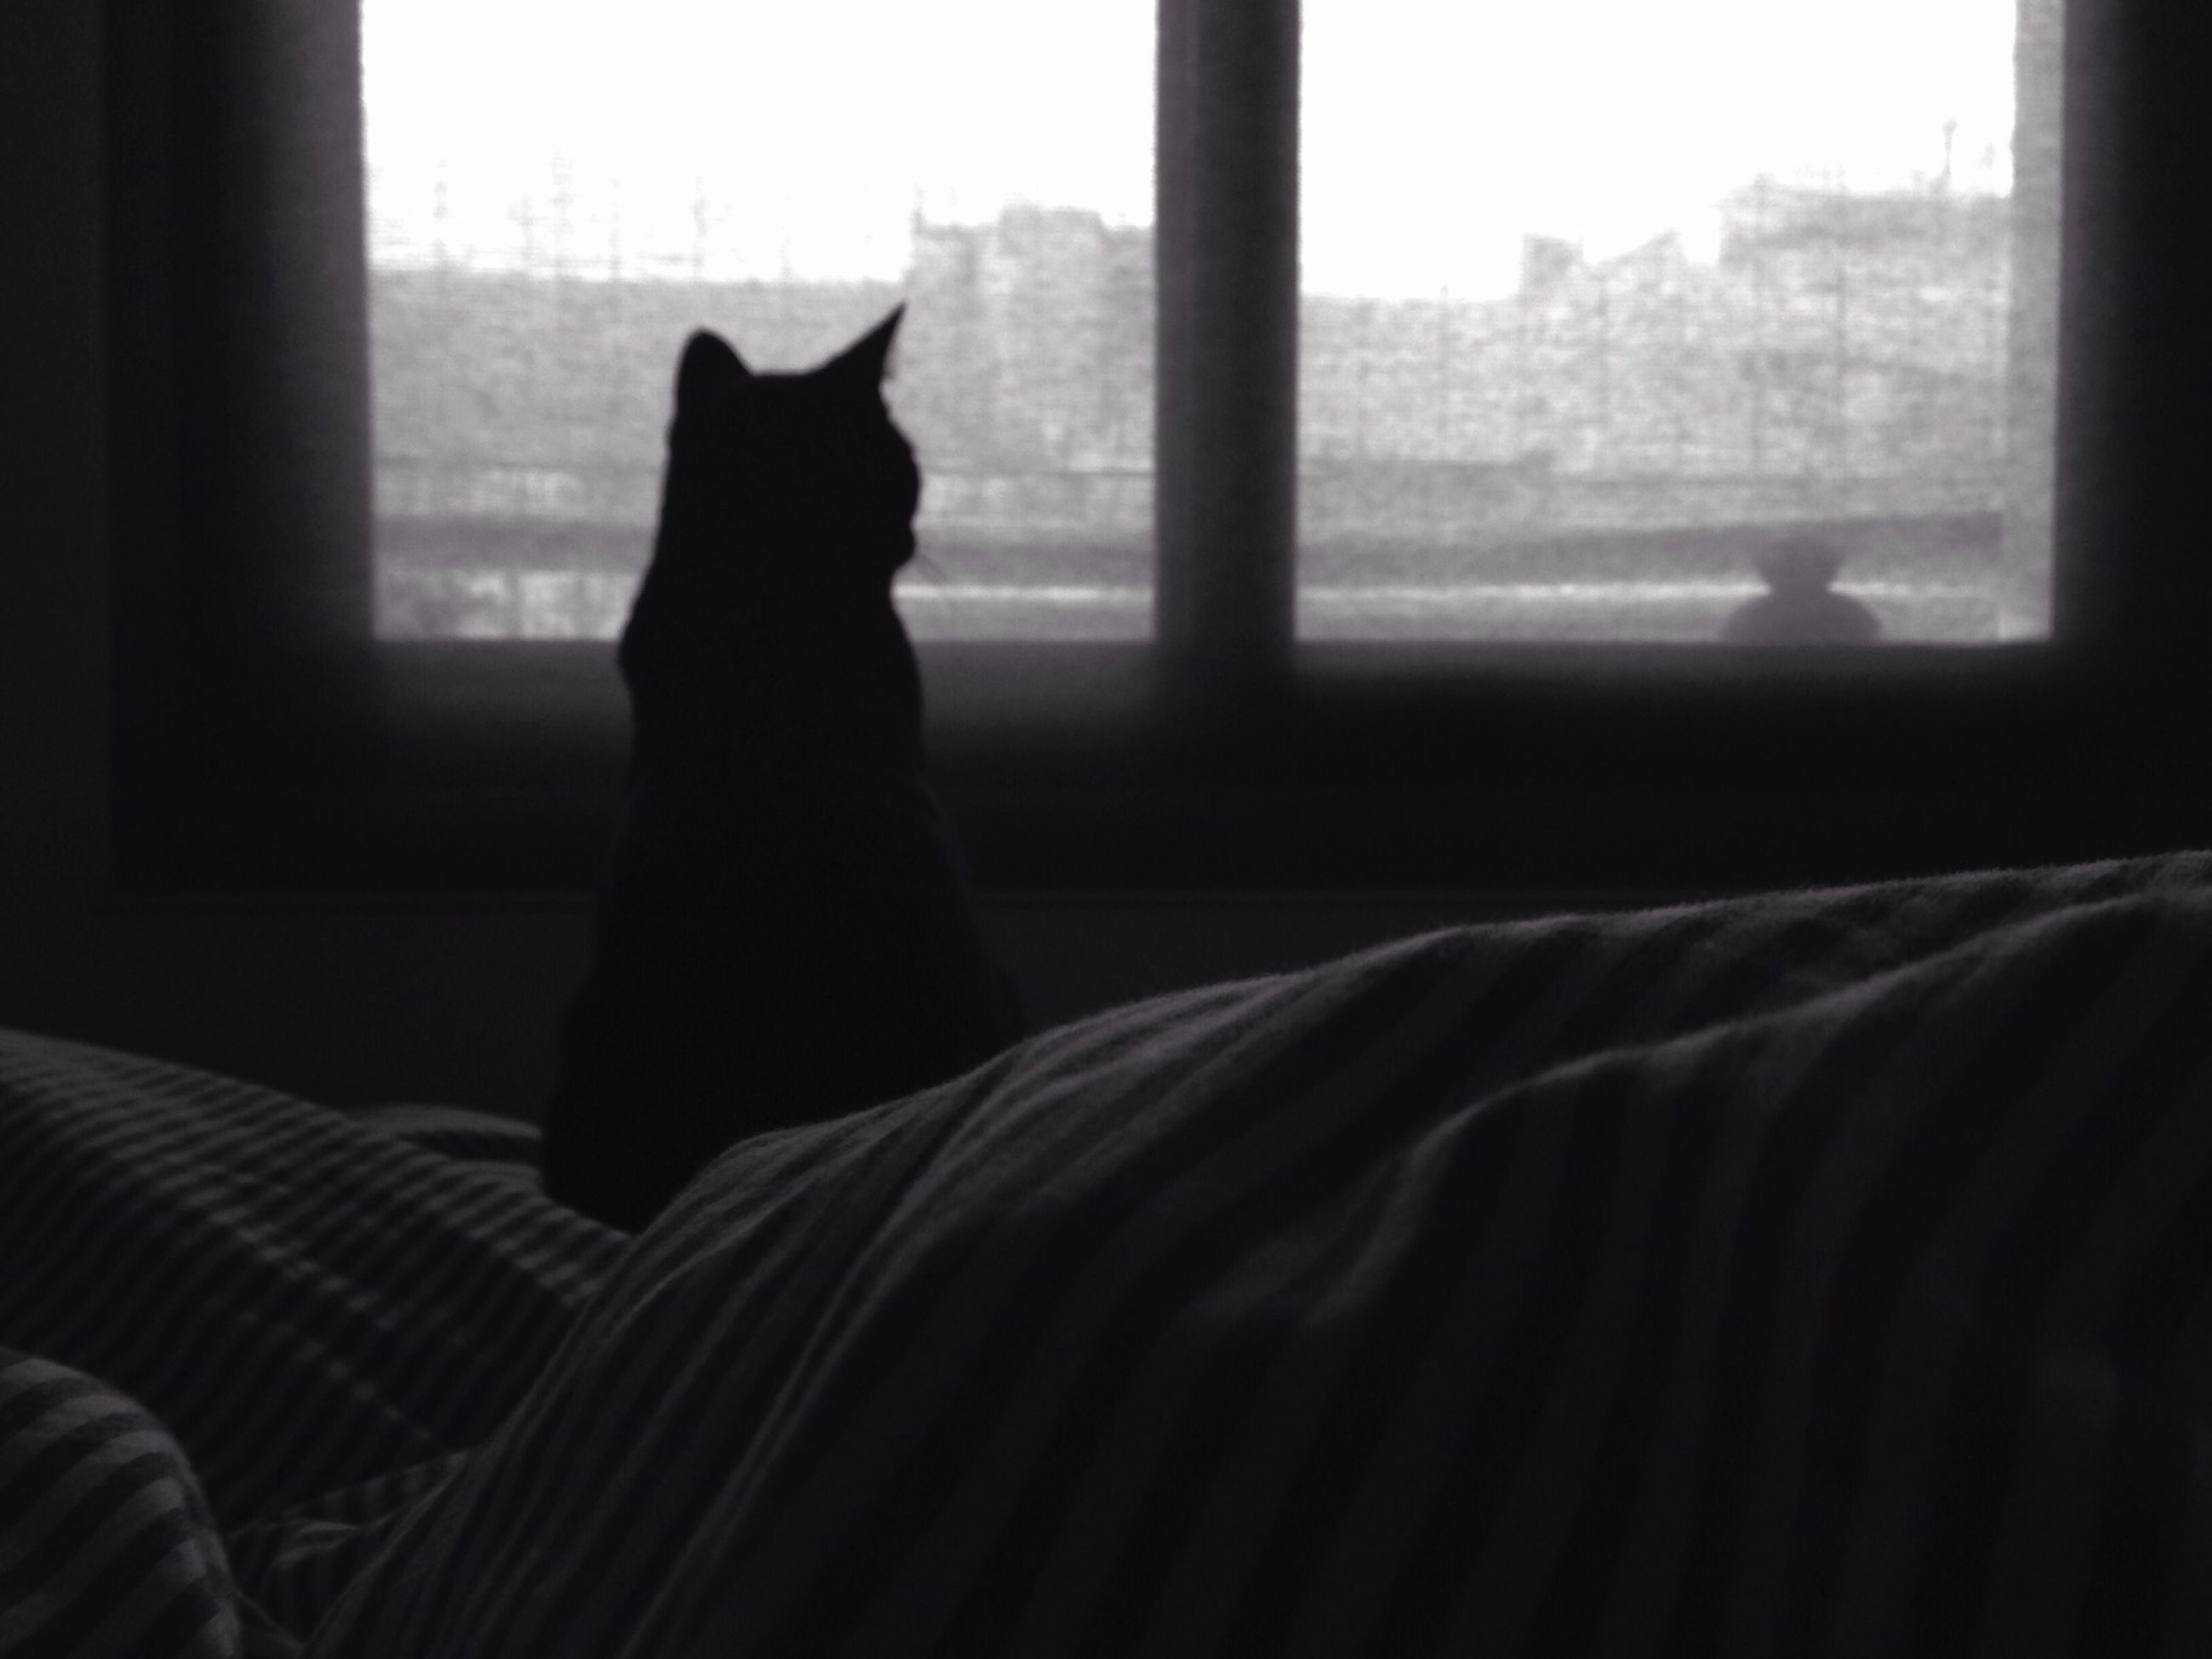 indoors, window, home interior, curtain, pets, domestic animals, relaxation, looking through window, glass - material, transparent, one animal, animal themes, sitting, one person, mammal, resting, sofa, silhouette, domestic room, bedroom